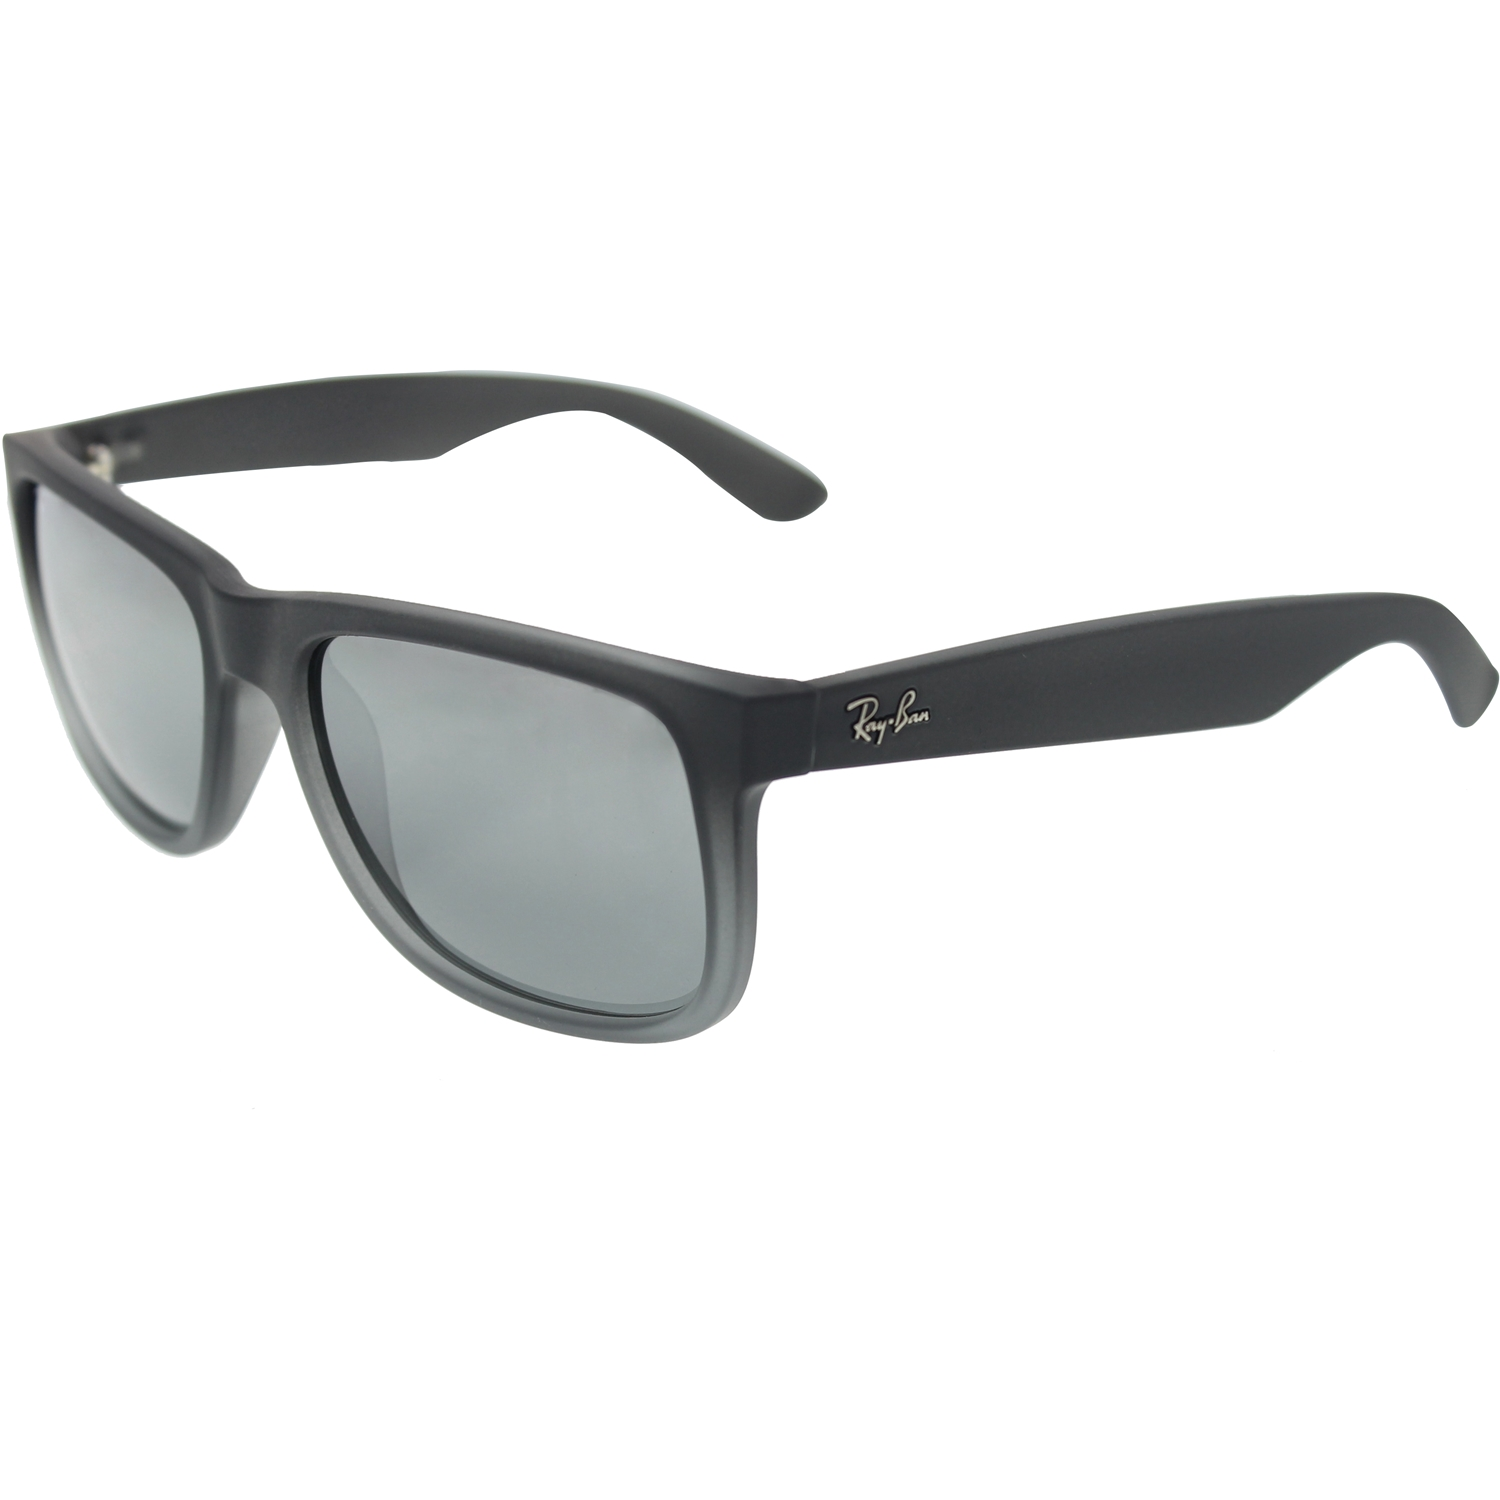 Ray-Ban Rectangle 0RB4165 Justin Sunglasses for Mens